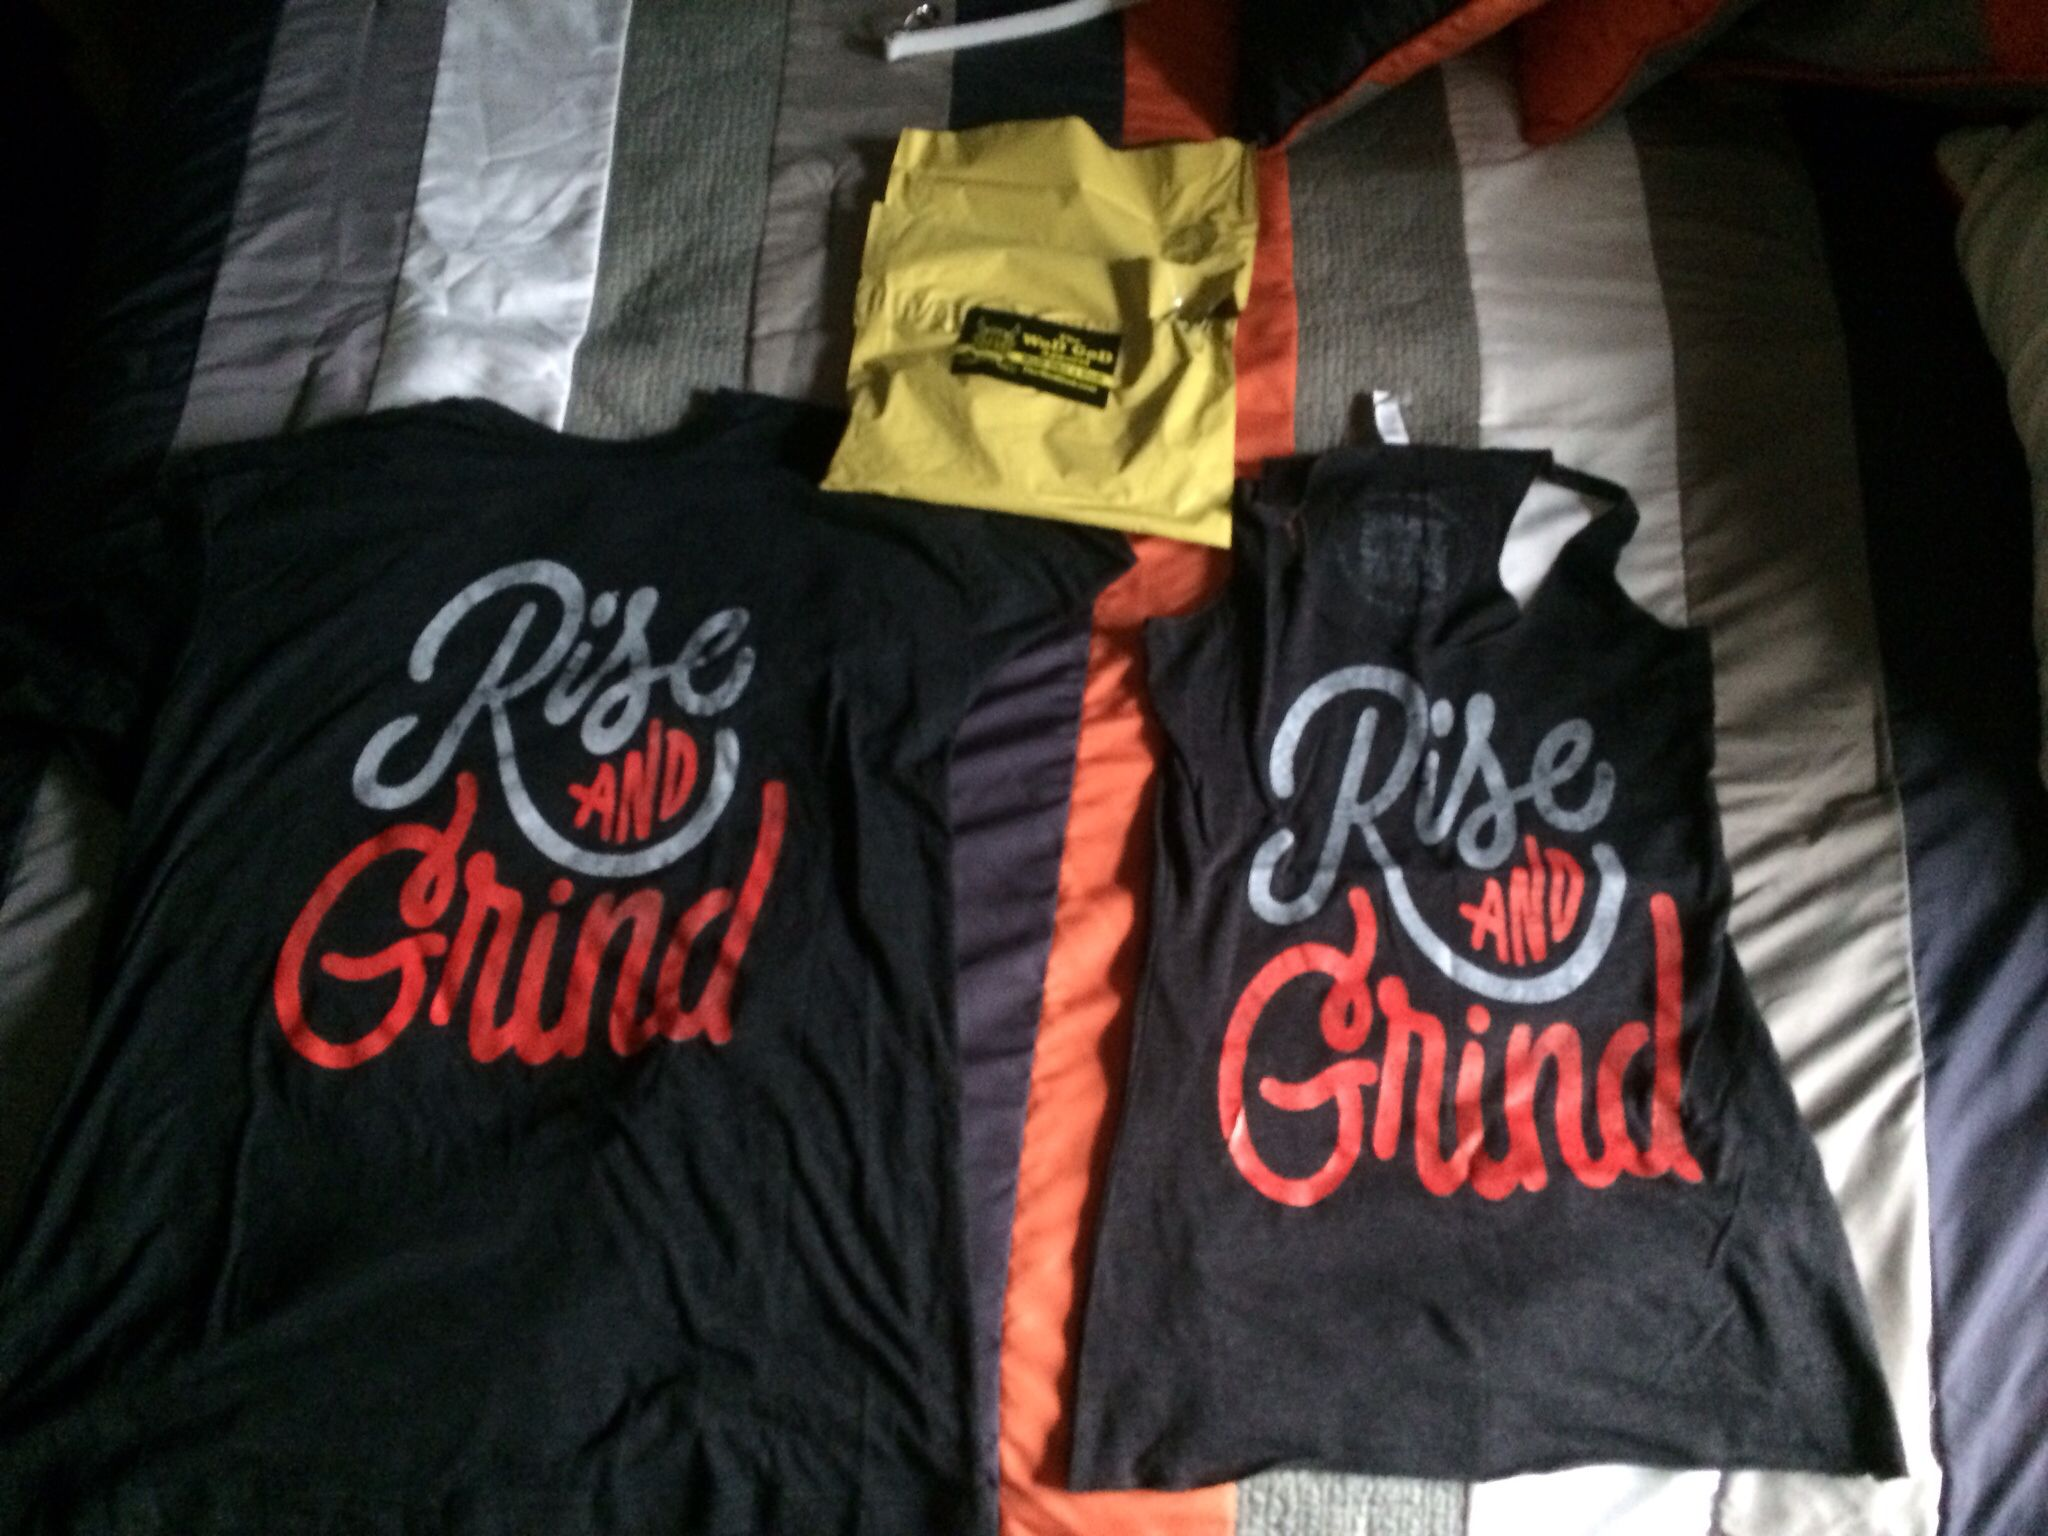 Wod of God Appreal - new shirt Rise and Grind back says Wod Like a God @thewodgod.com